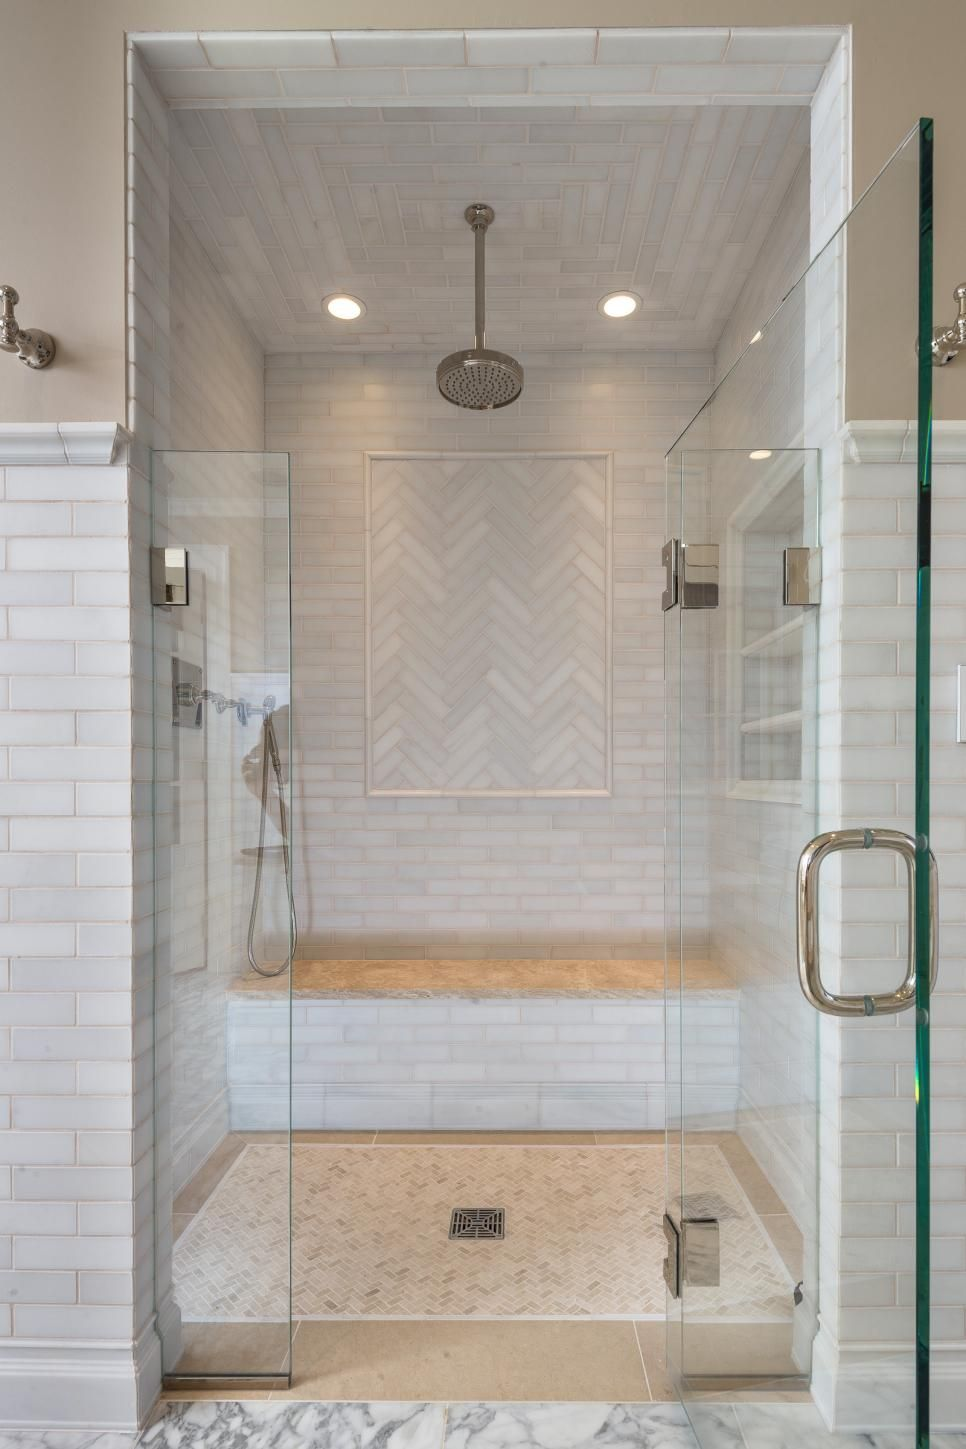 The master bathroom for her features a beautiful walk-in shower with a top mounted head, a hand-held shower head, and built-in wall shelving and bench. The tiled interior and chevron patterns give it a touch of elegance and embellishment.